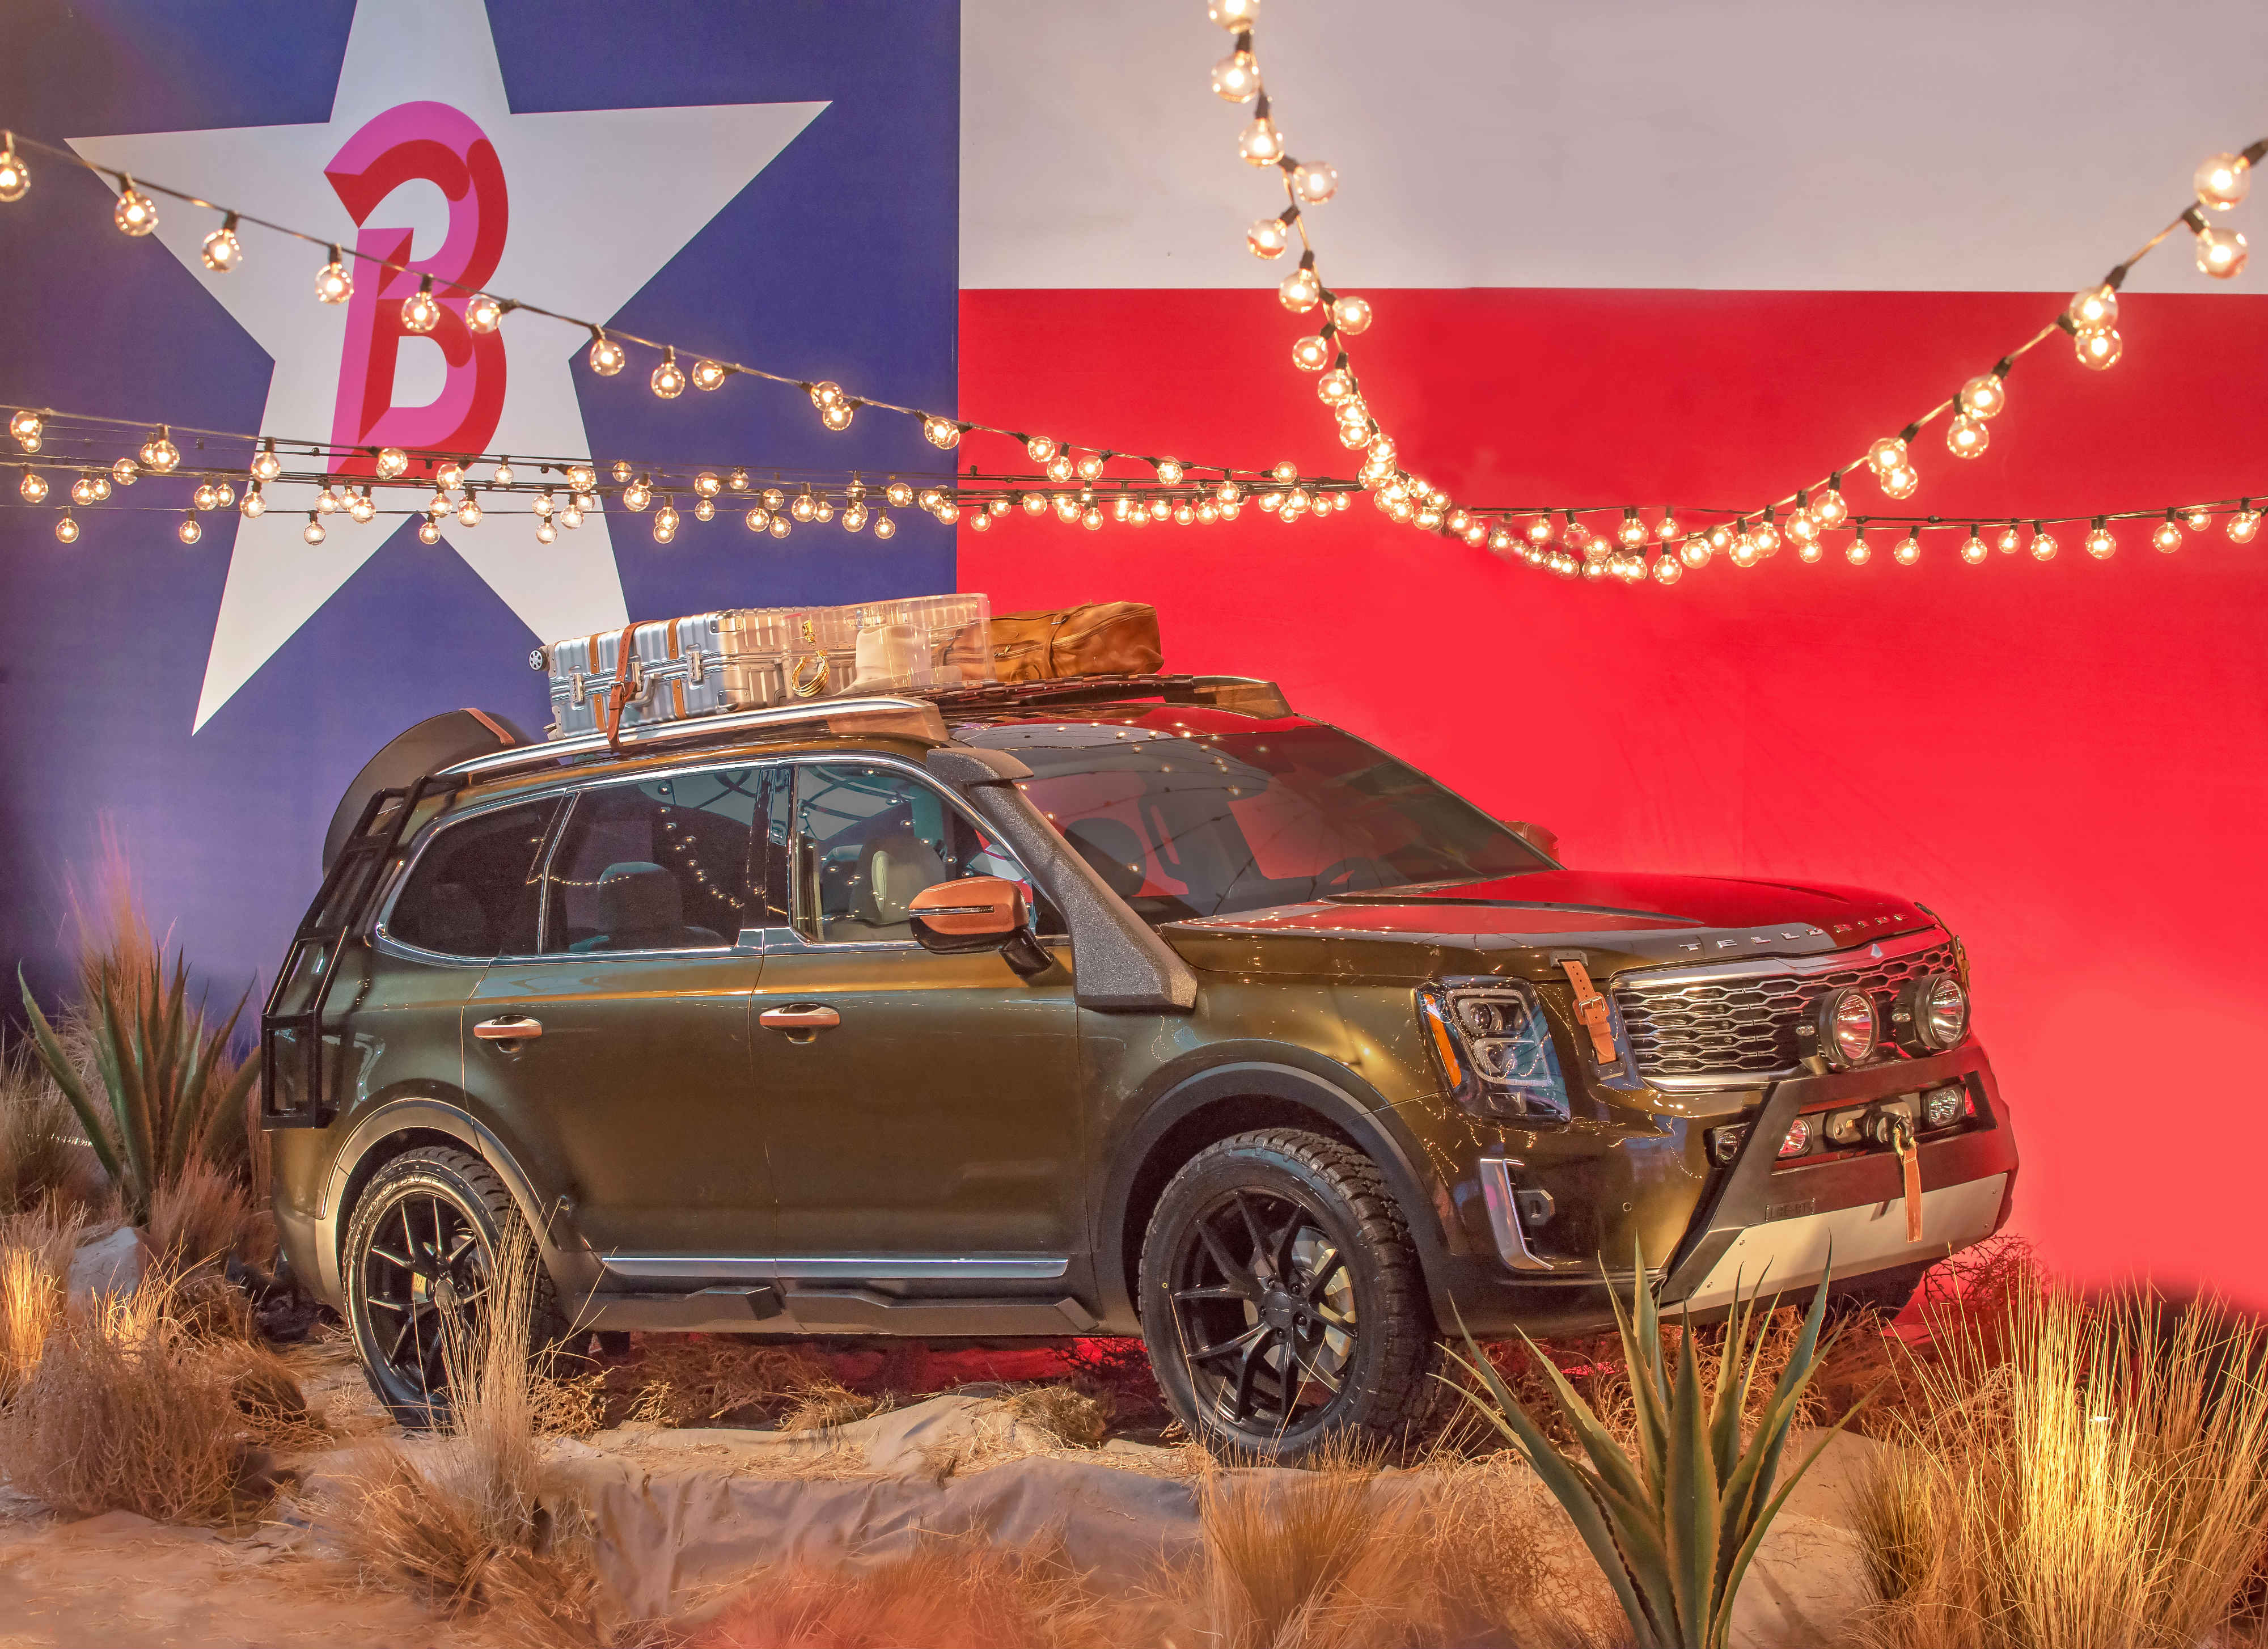 The one-of-a-kind rendition of Kia Motors' largest SUV is influenced by fashion designer Brandon Maxwell's latest Texas-inspired runway collection.